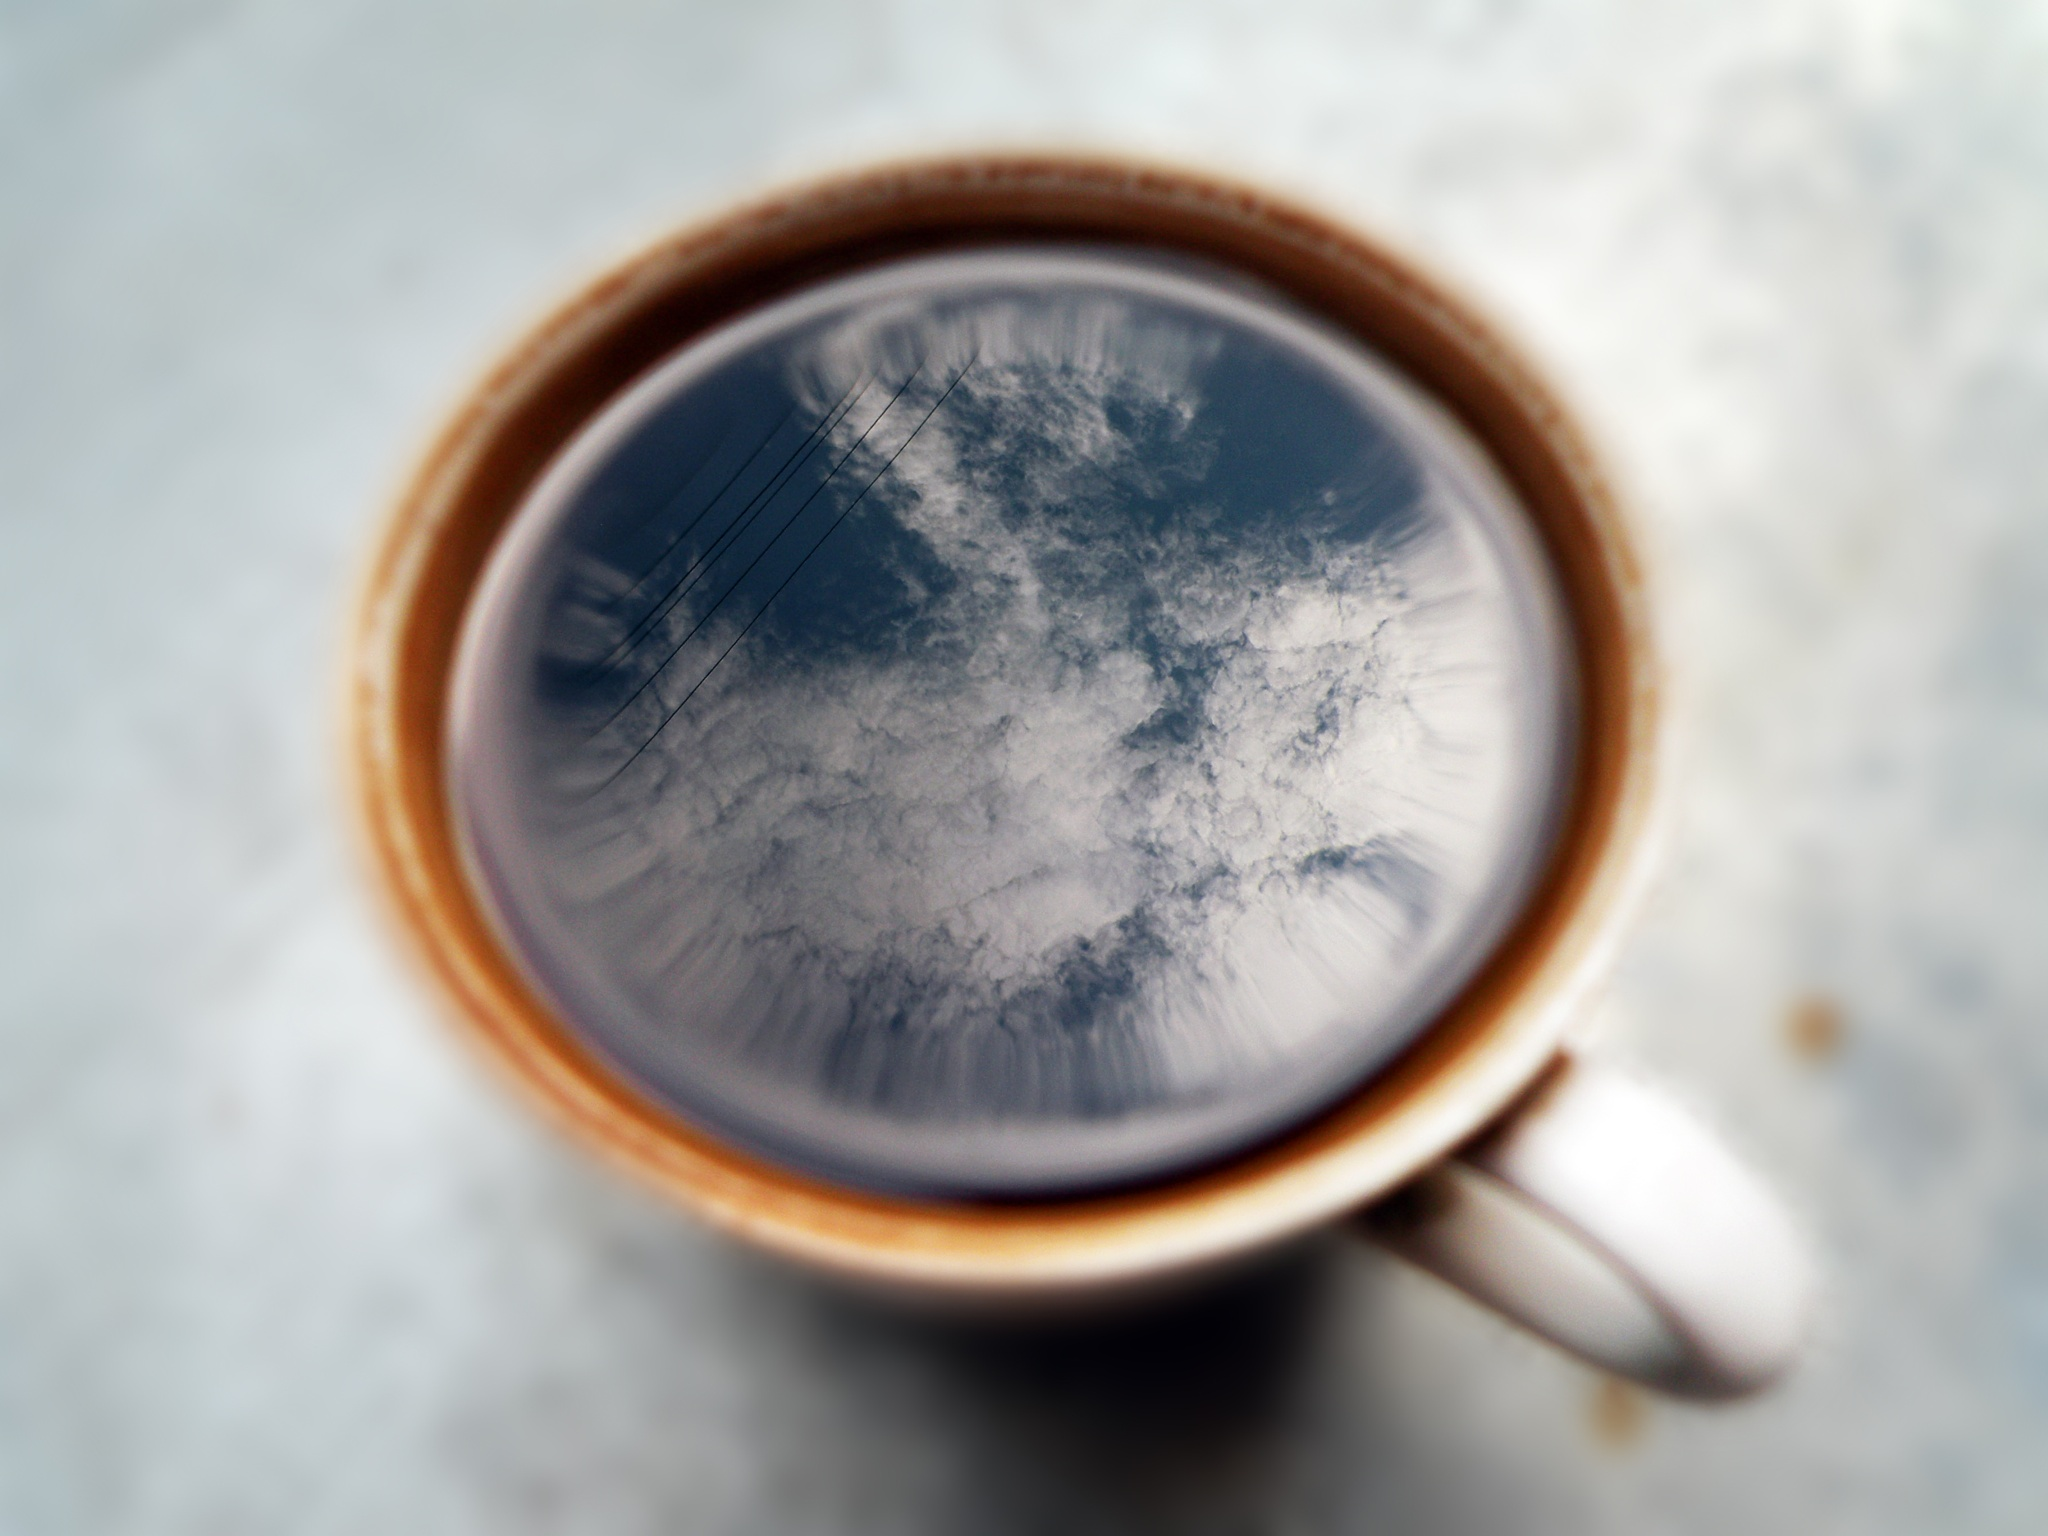 Cup of coffee with foam cloud by Alexandr  V. Seleznov